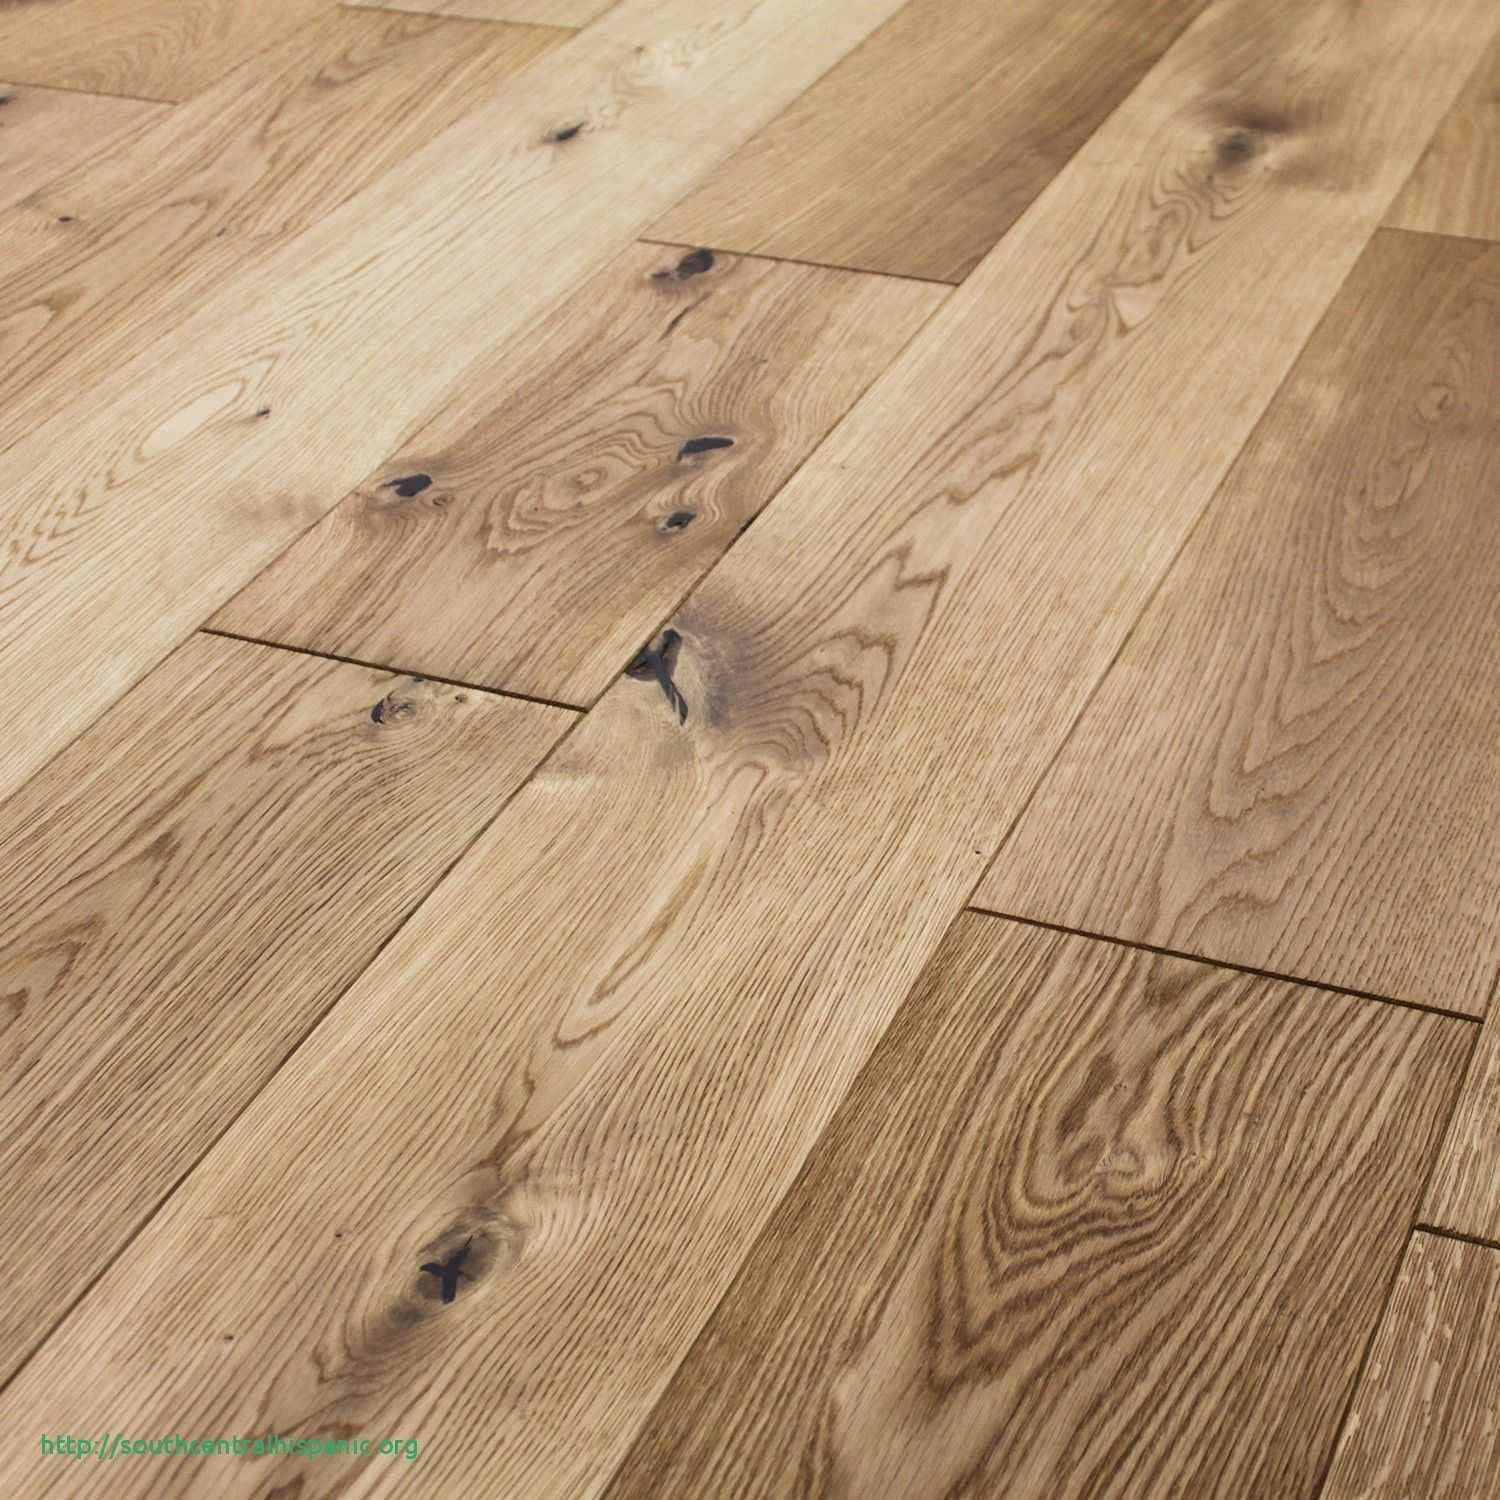 best quality engineered hardwood flooring of 10 best quality engineered hardwood flooring trends best flooring within hickory laminate flooring lovely brazilian hickory hardwood floors interior design ideas laminate floors quality flooring 0d